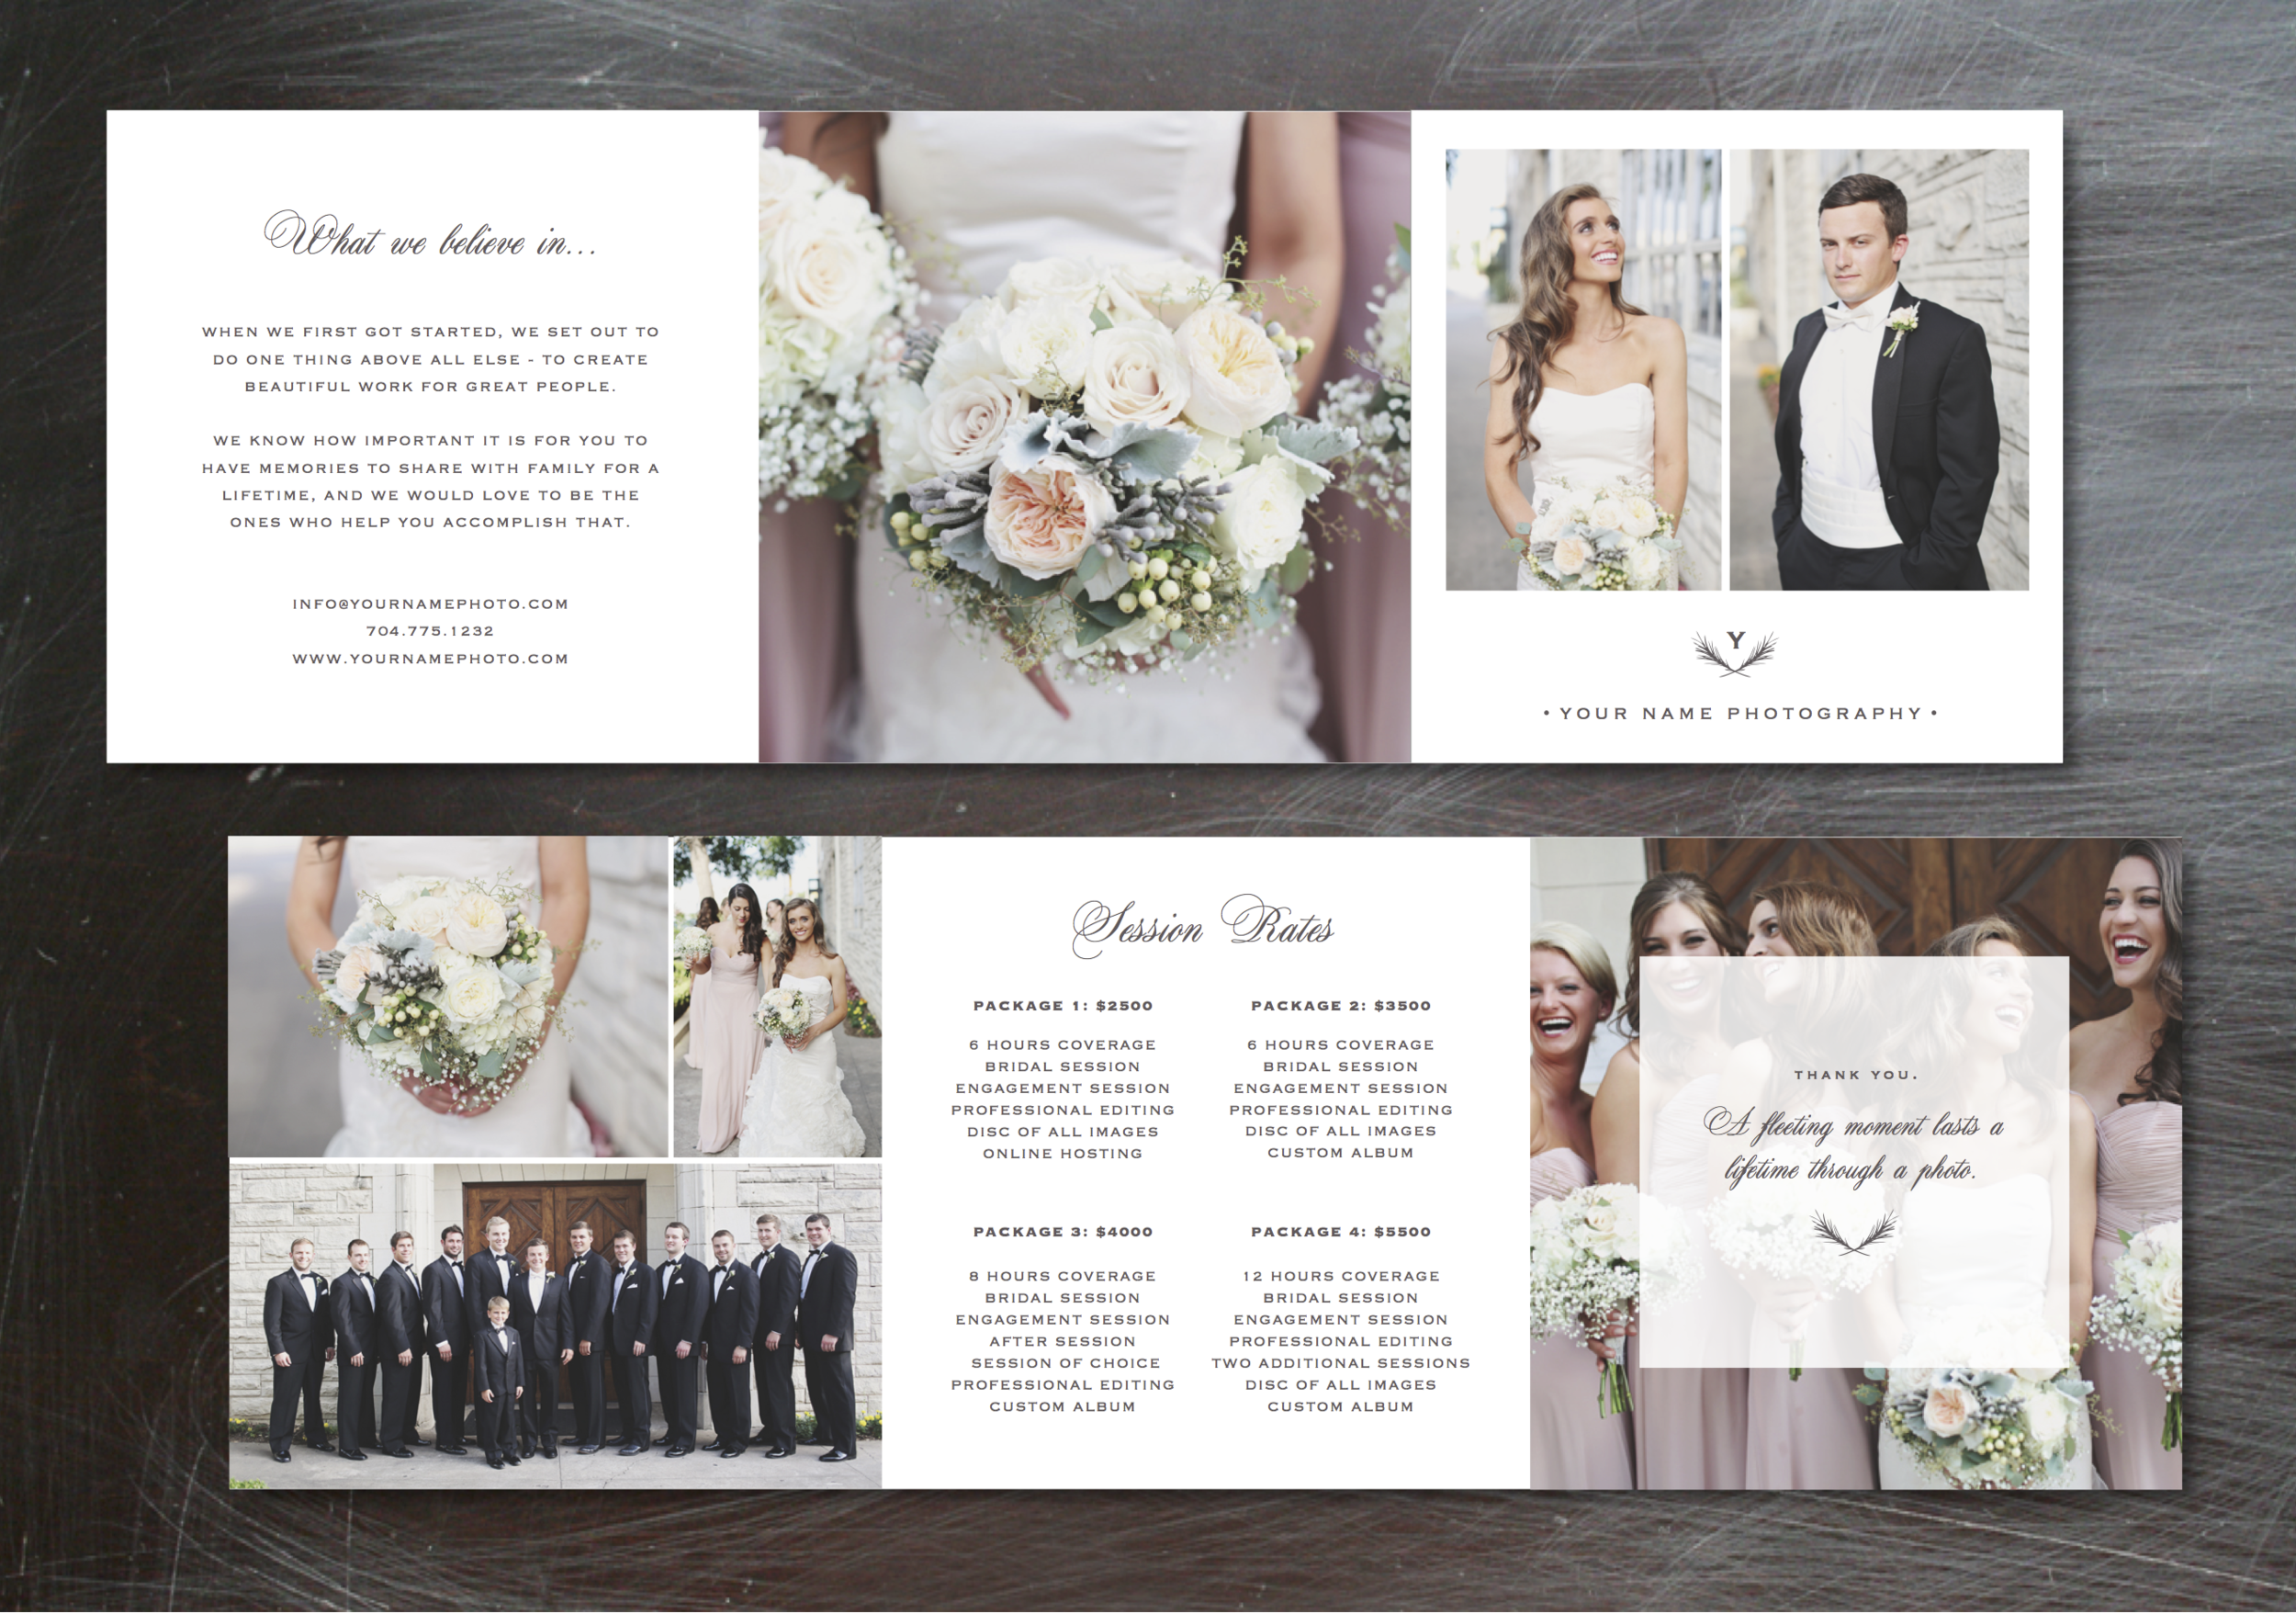 Wedding photography marketing templates for Photography marketing templates